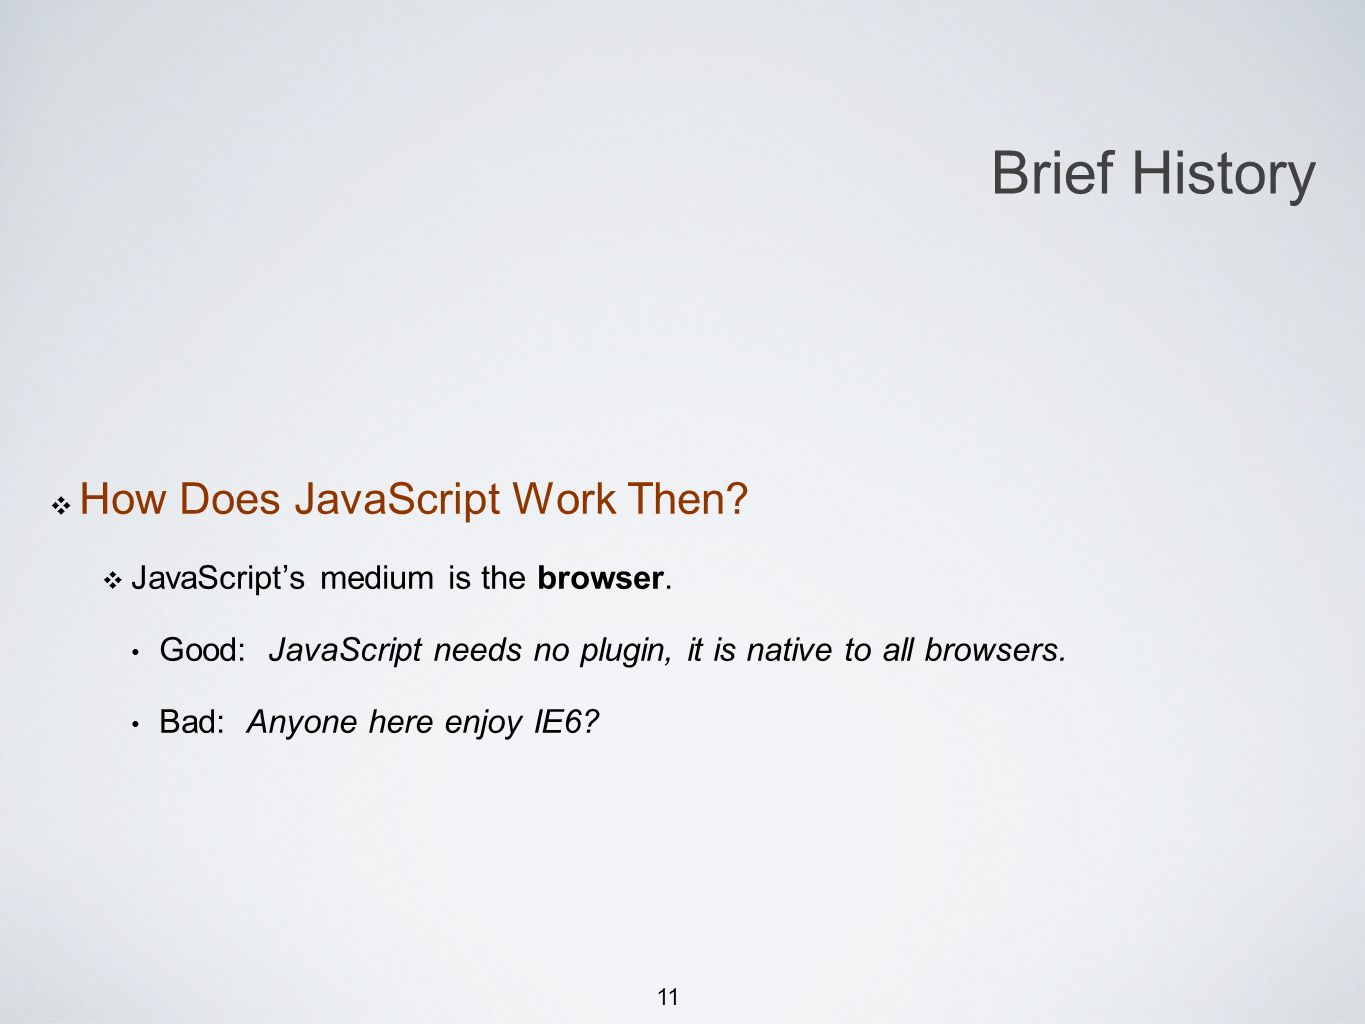 11 How Does JavaScript Work Then? JavaScripts medium is the browser. Good: JavaScript needs no plugin, it is native to all browsers. Bad: Anyone here